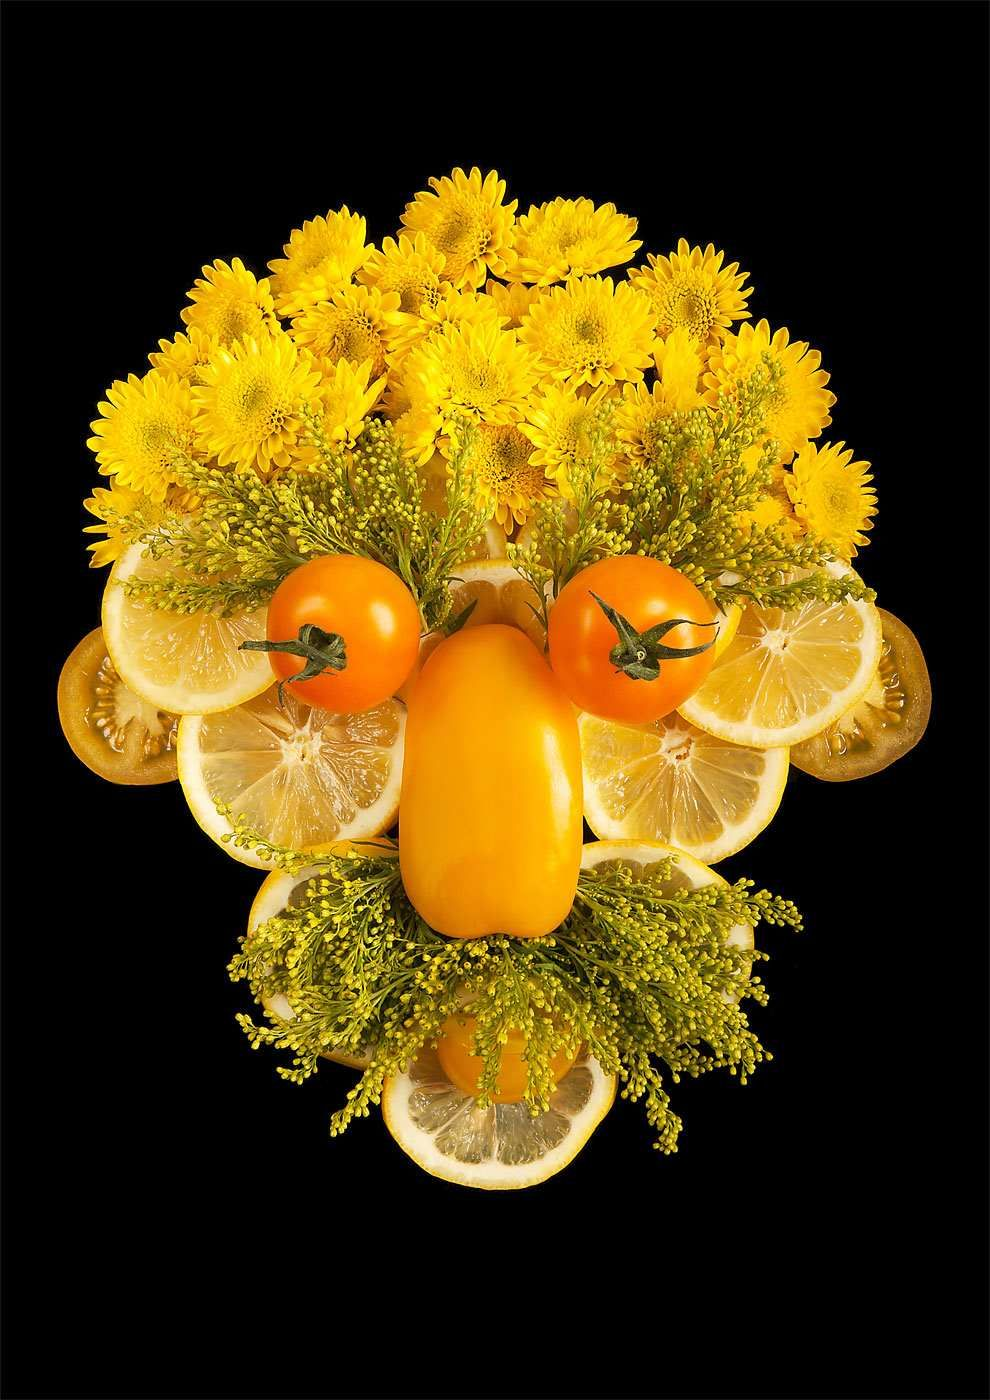 Fresh Faces Made From Organic Food by Emily Dryden & Zahydé Pietri #inspiration #photography